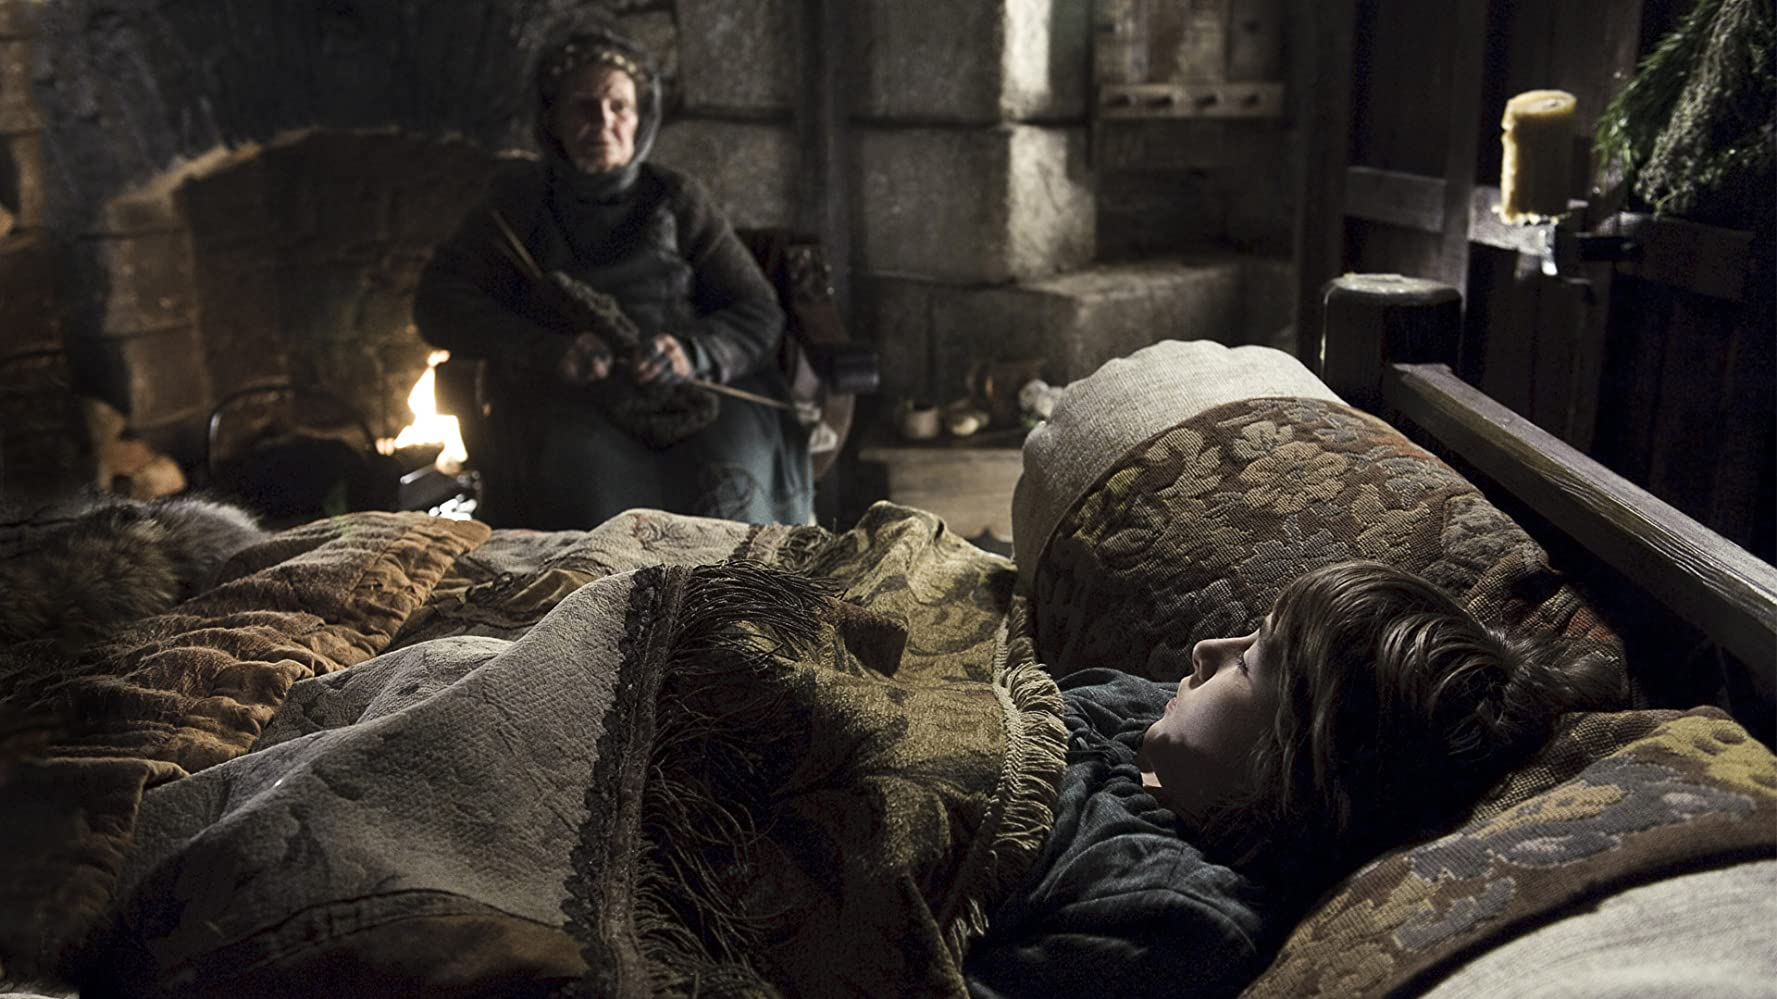 Margaret John and Isaac Hempstead Wright in Game of Thrones (2011)